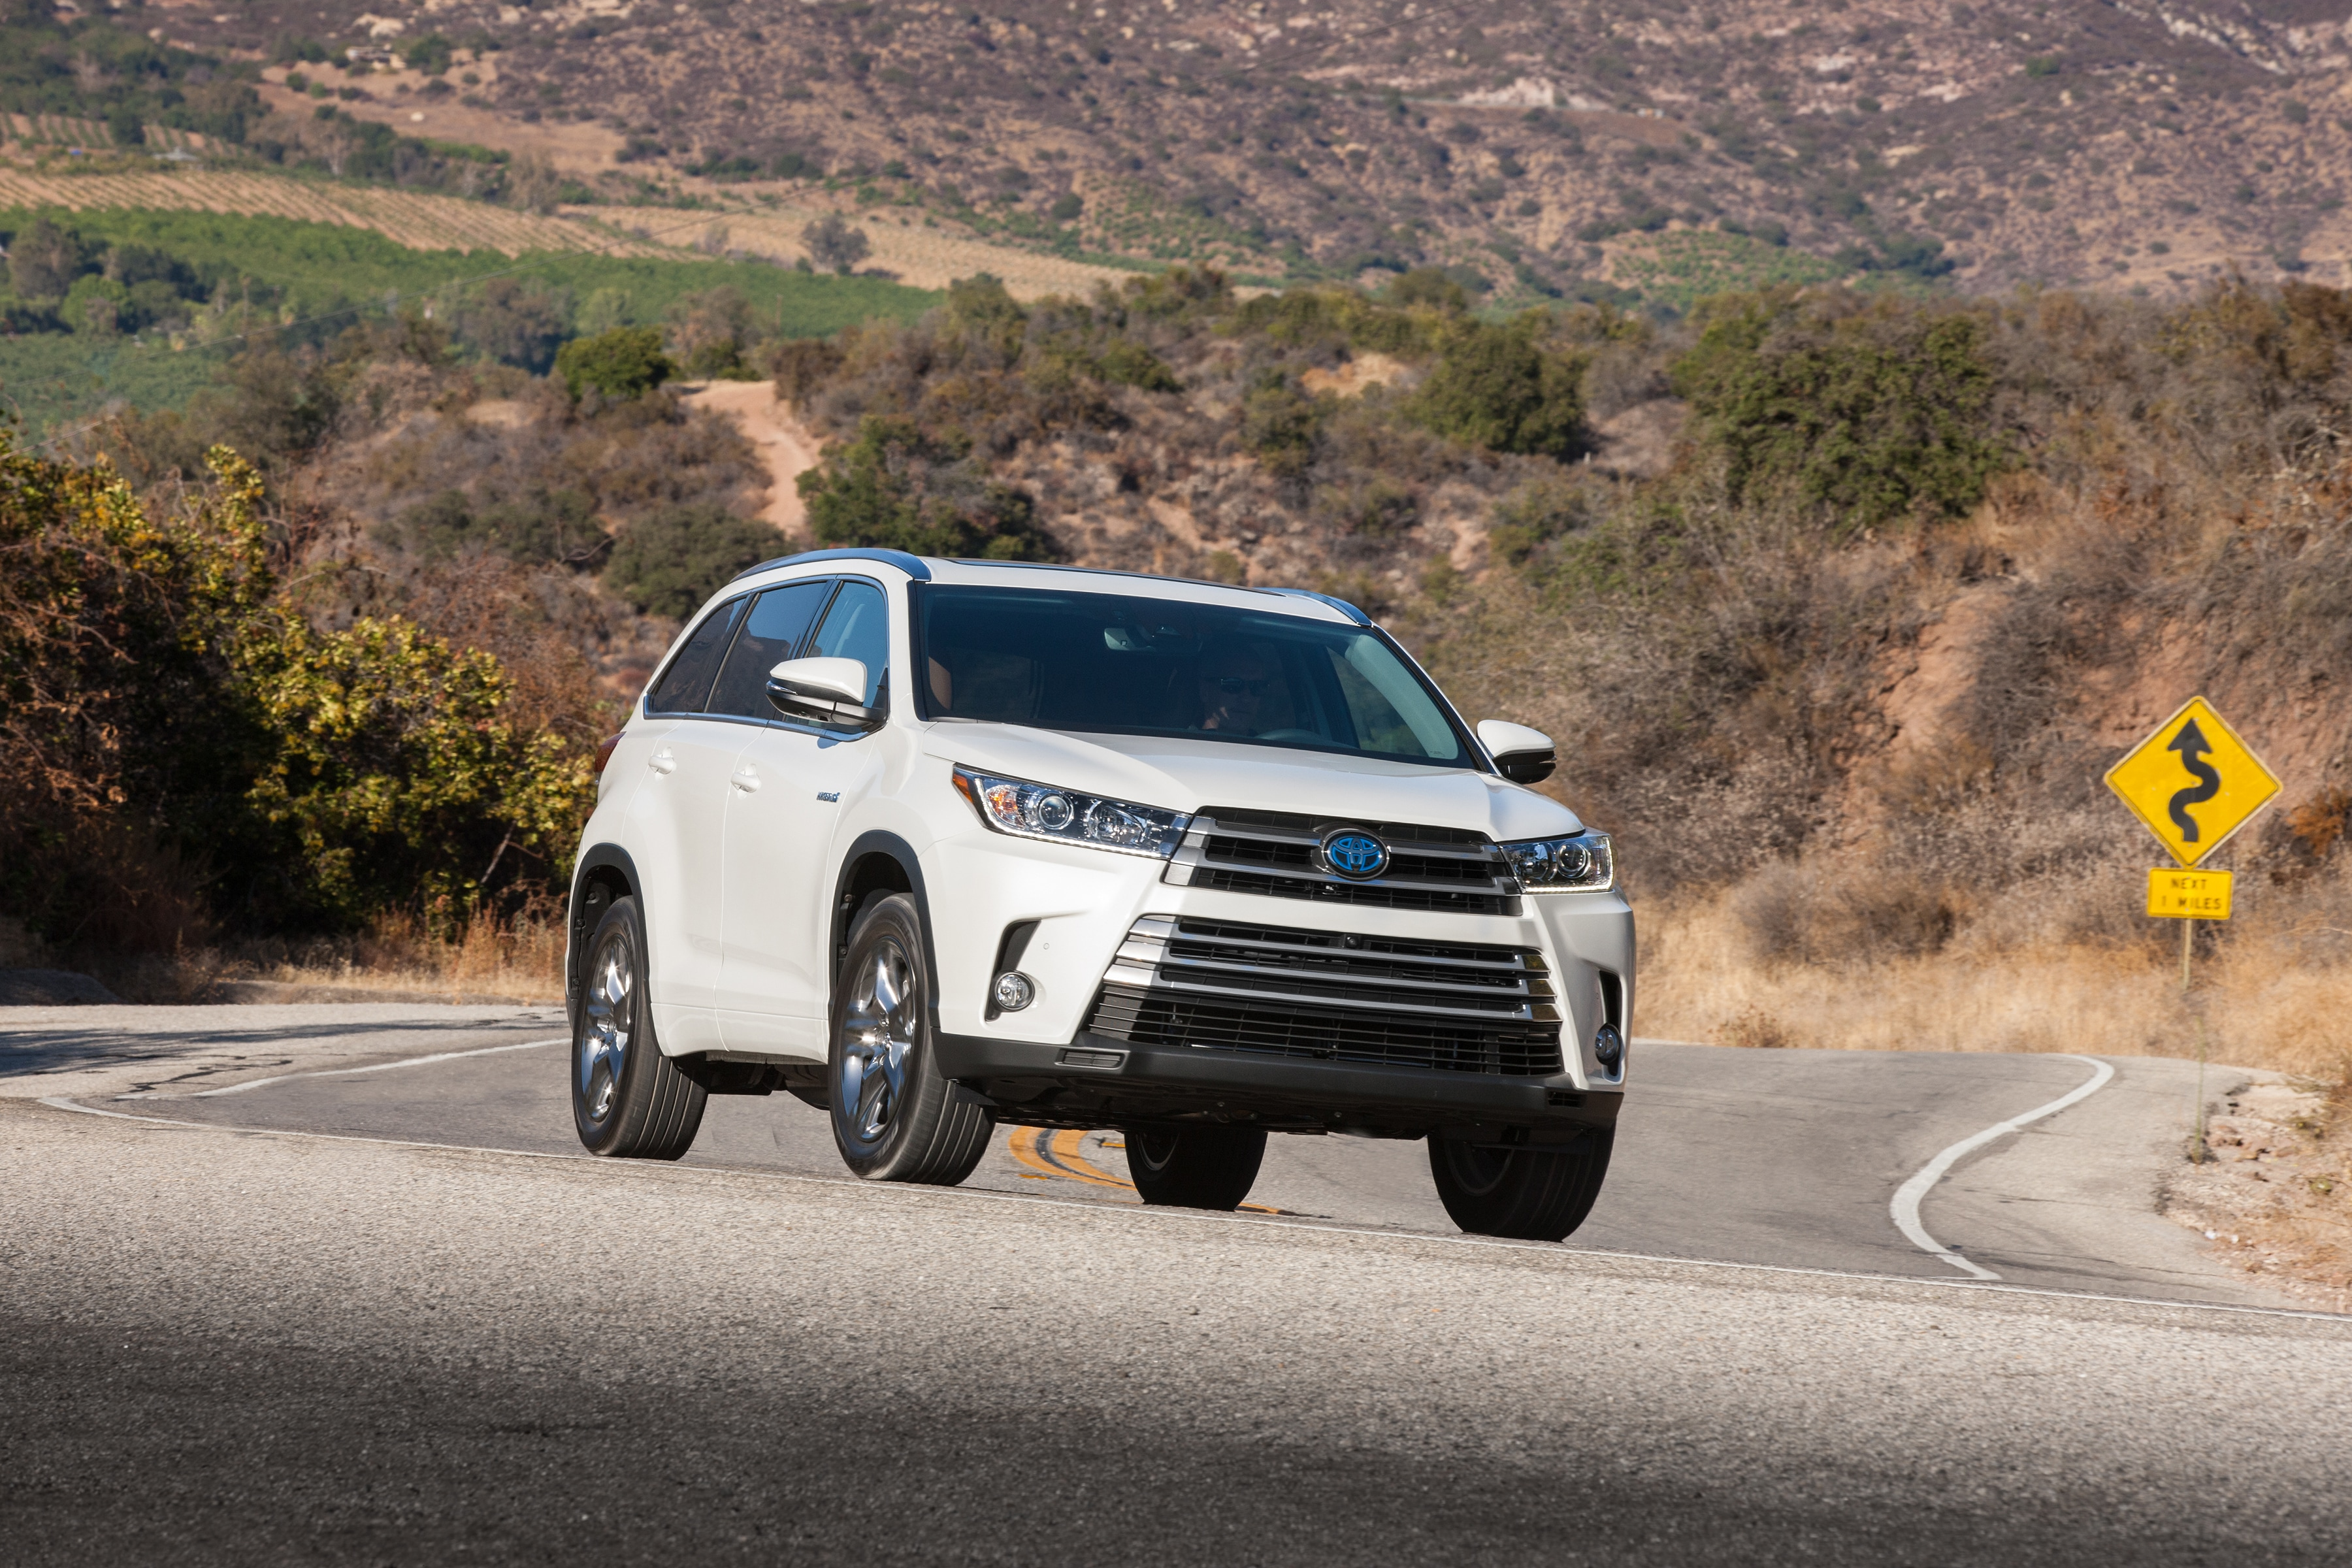 Toyota Highlander Owners Manual: Starting the engine